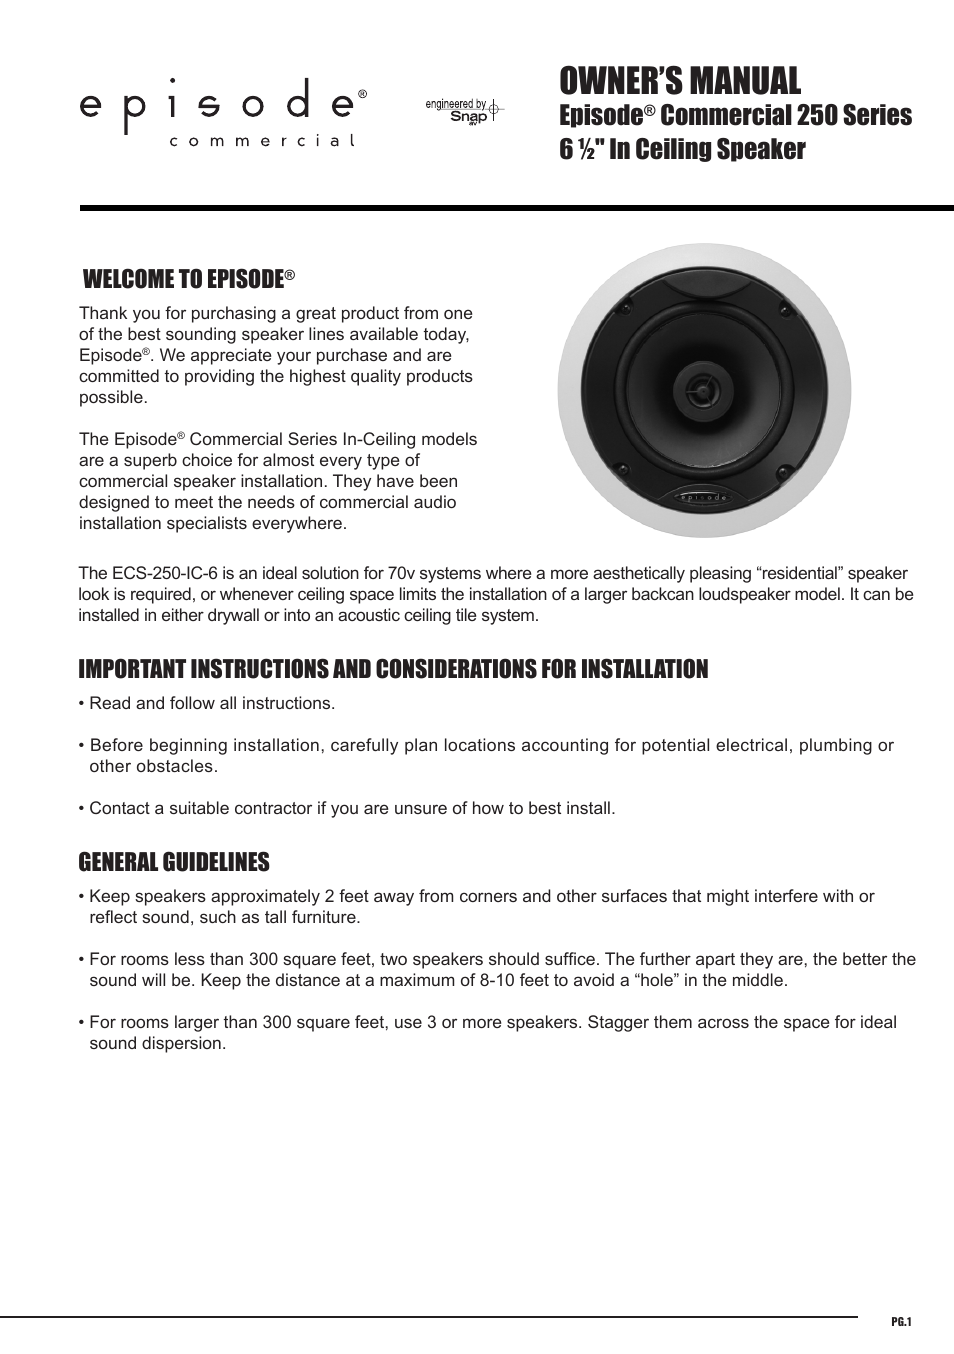 Staub Electronics Ecs 250 Ic 6 Episode Commercial Series In Ceiling 25 70 Volt Two Way Speaker With 1 2 Woofer Each User Manual 4 Pages